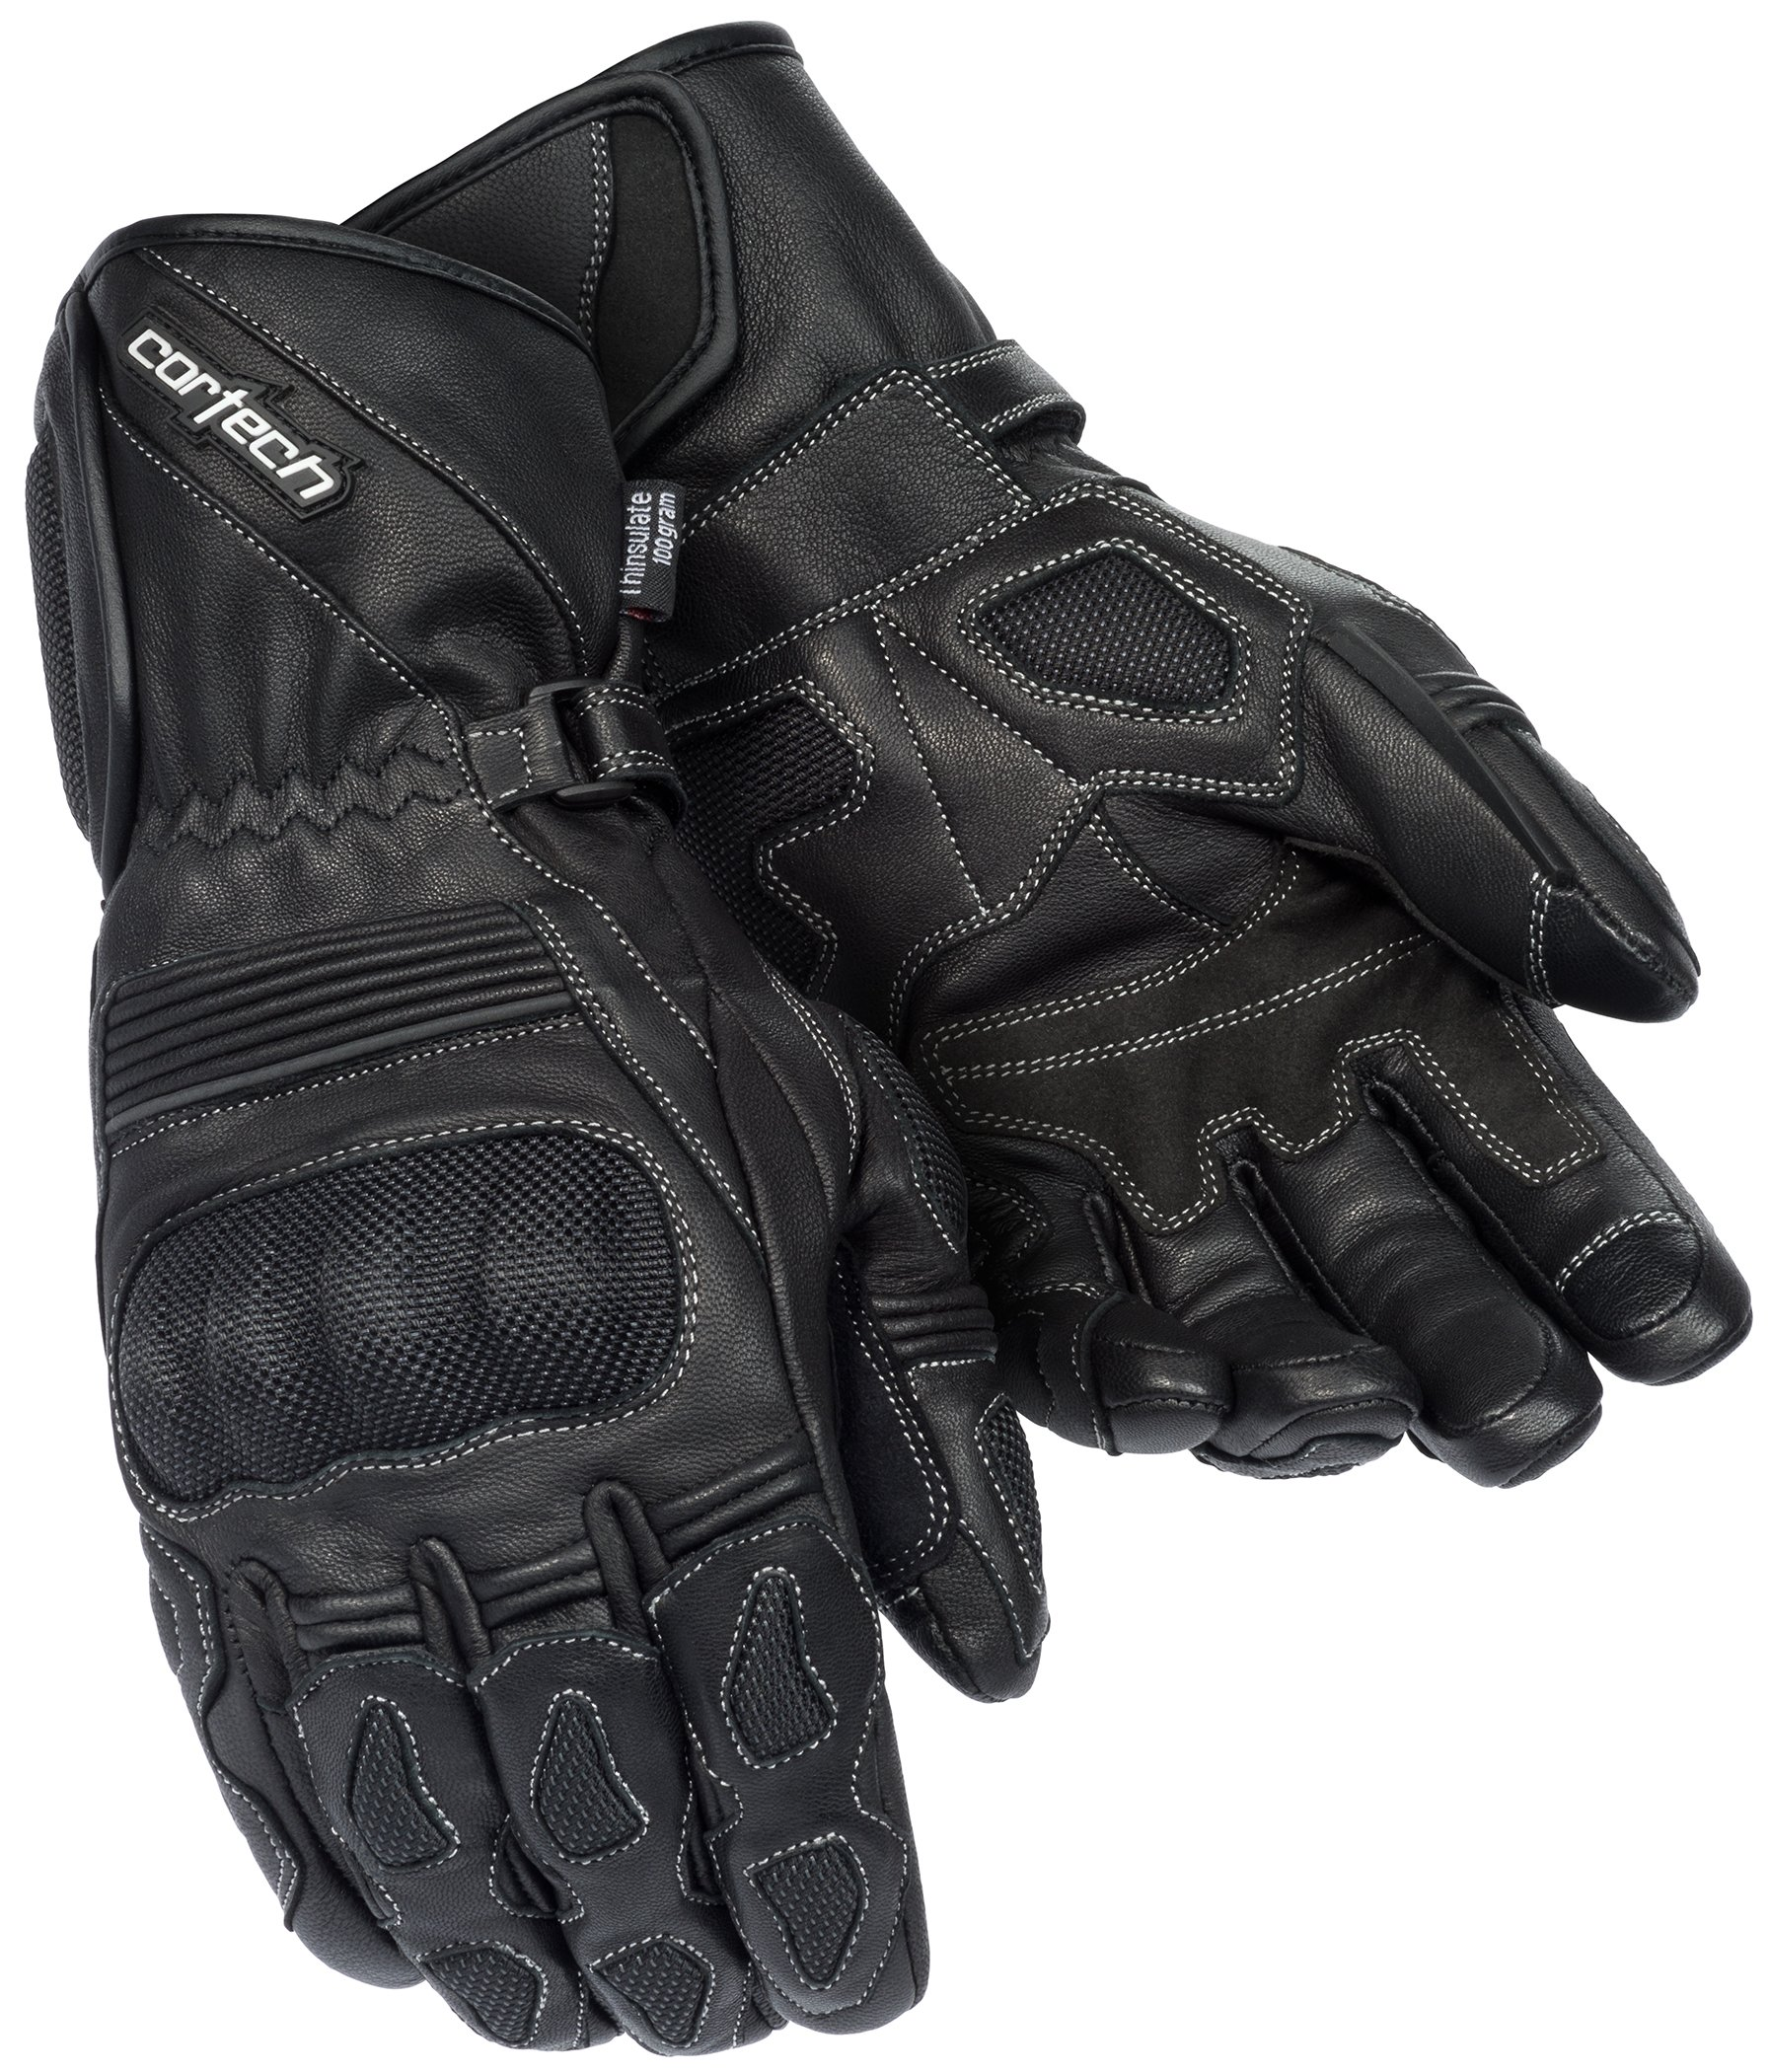 Cortech Men's Scarab 2.0 Winter Motorcycle Gloves (Black, X-Large)